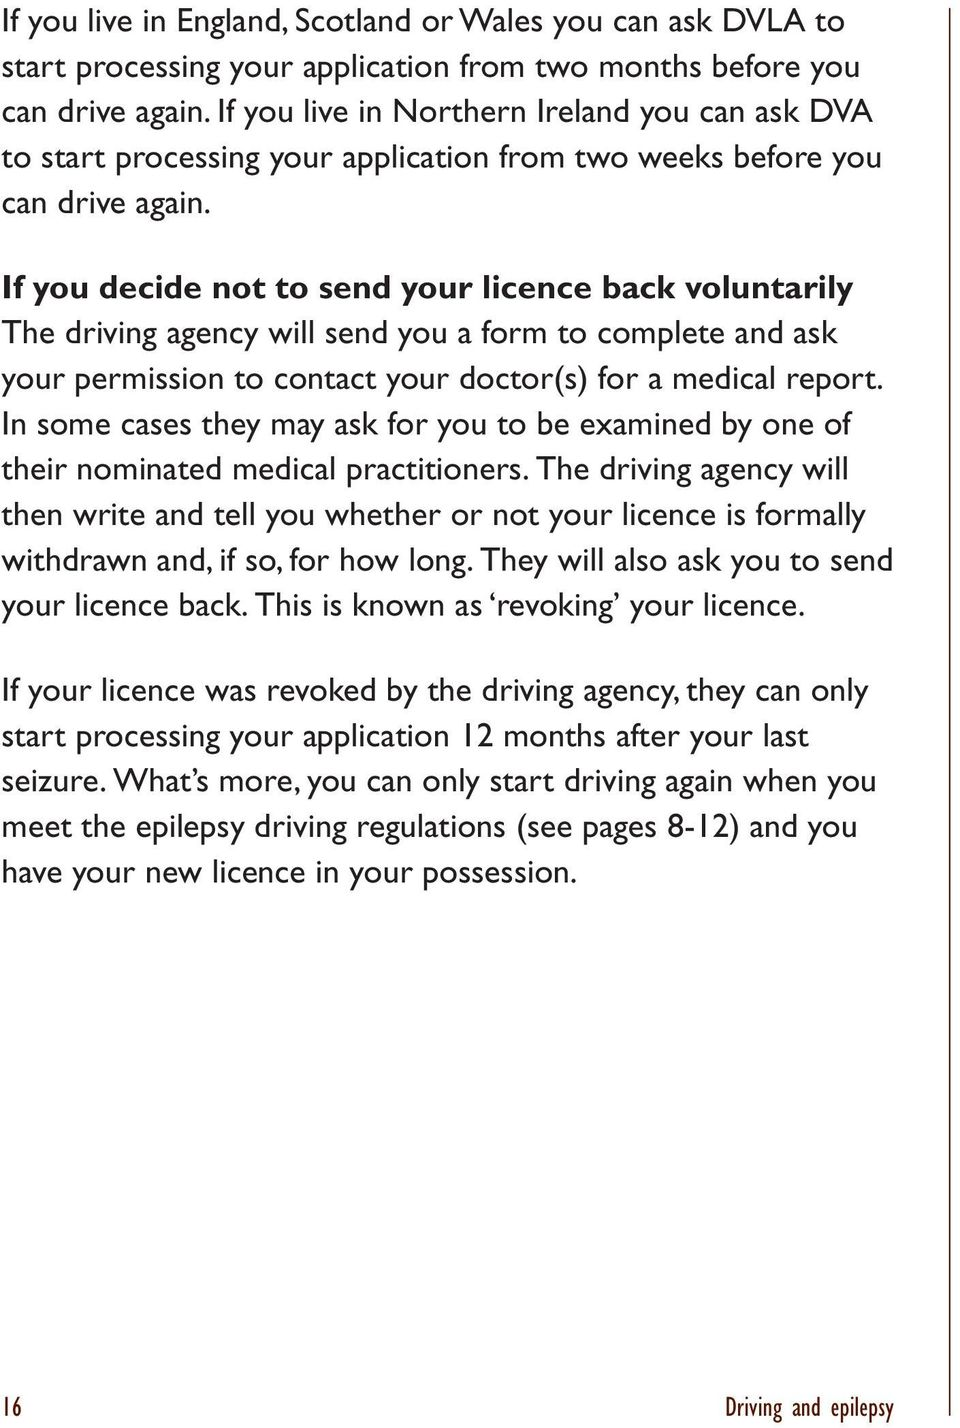 If you decide not to send your licence back voluntarily The driving agency will send you a form to complete and ask your permission to contact your doctor(s) for a medical report.